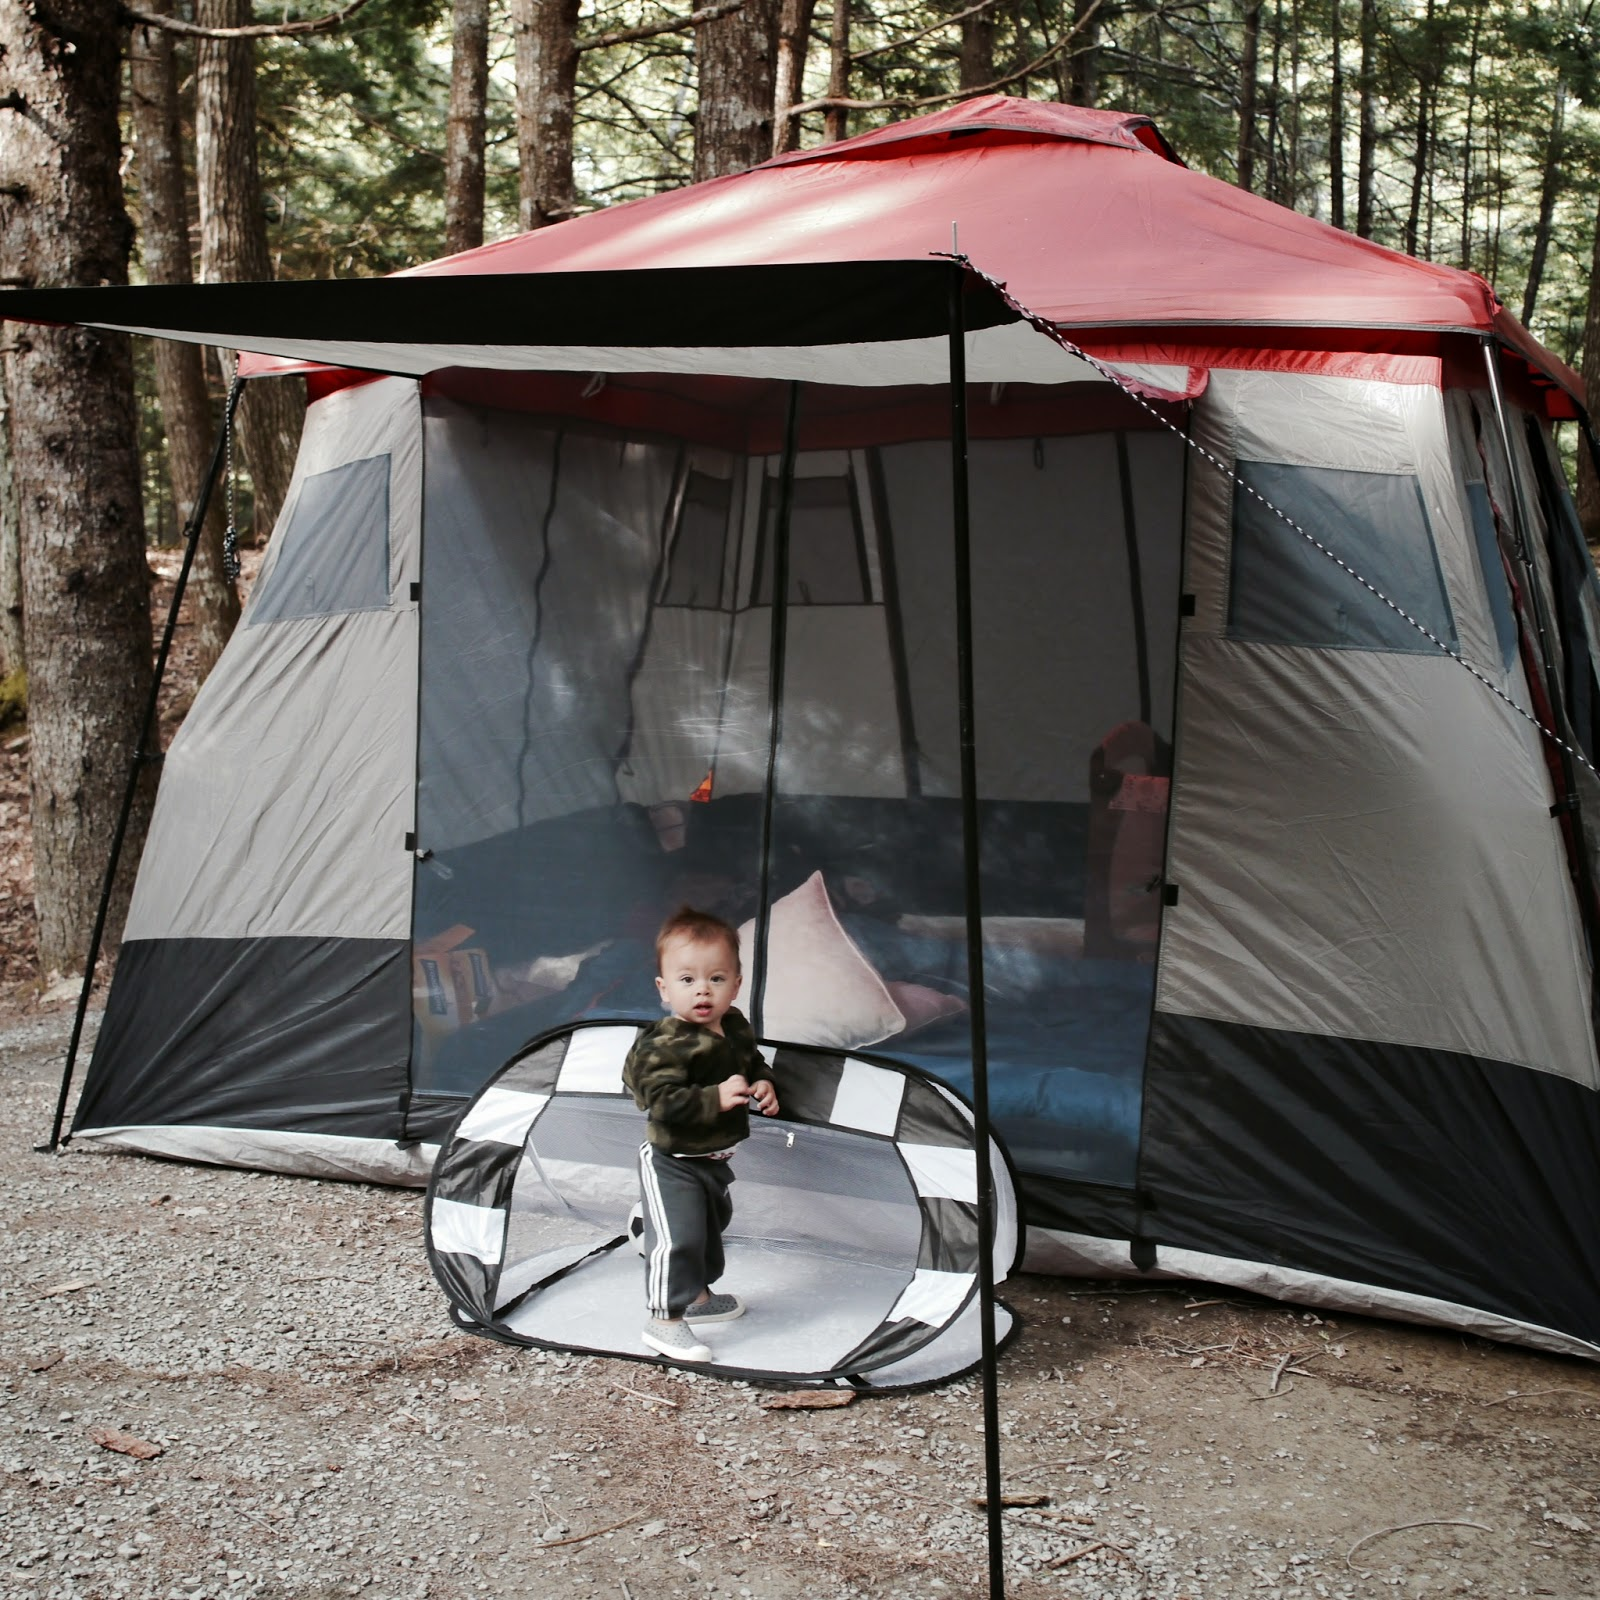 ROOKIE DAD LESSON LEARNED 106 Camping with a toddler is a lot